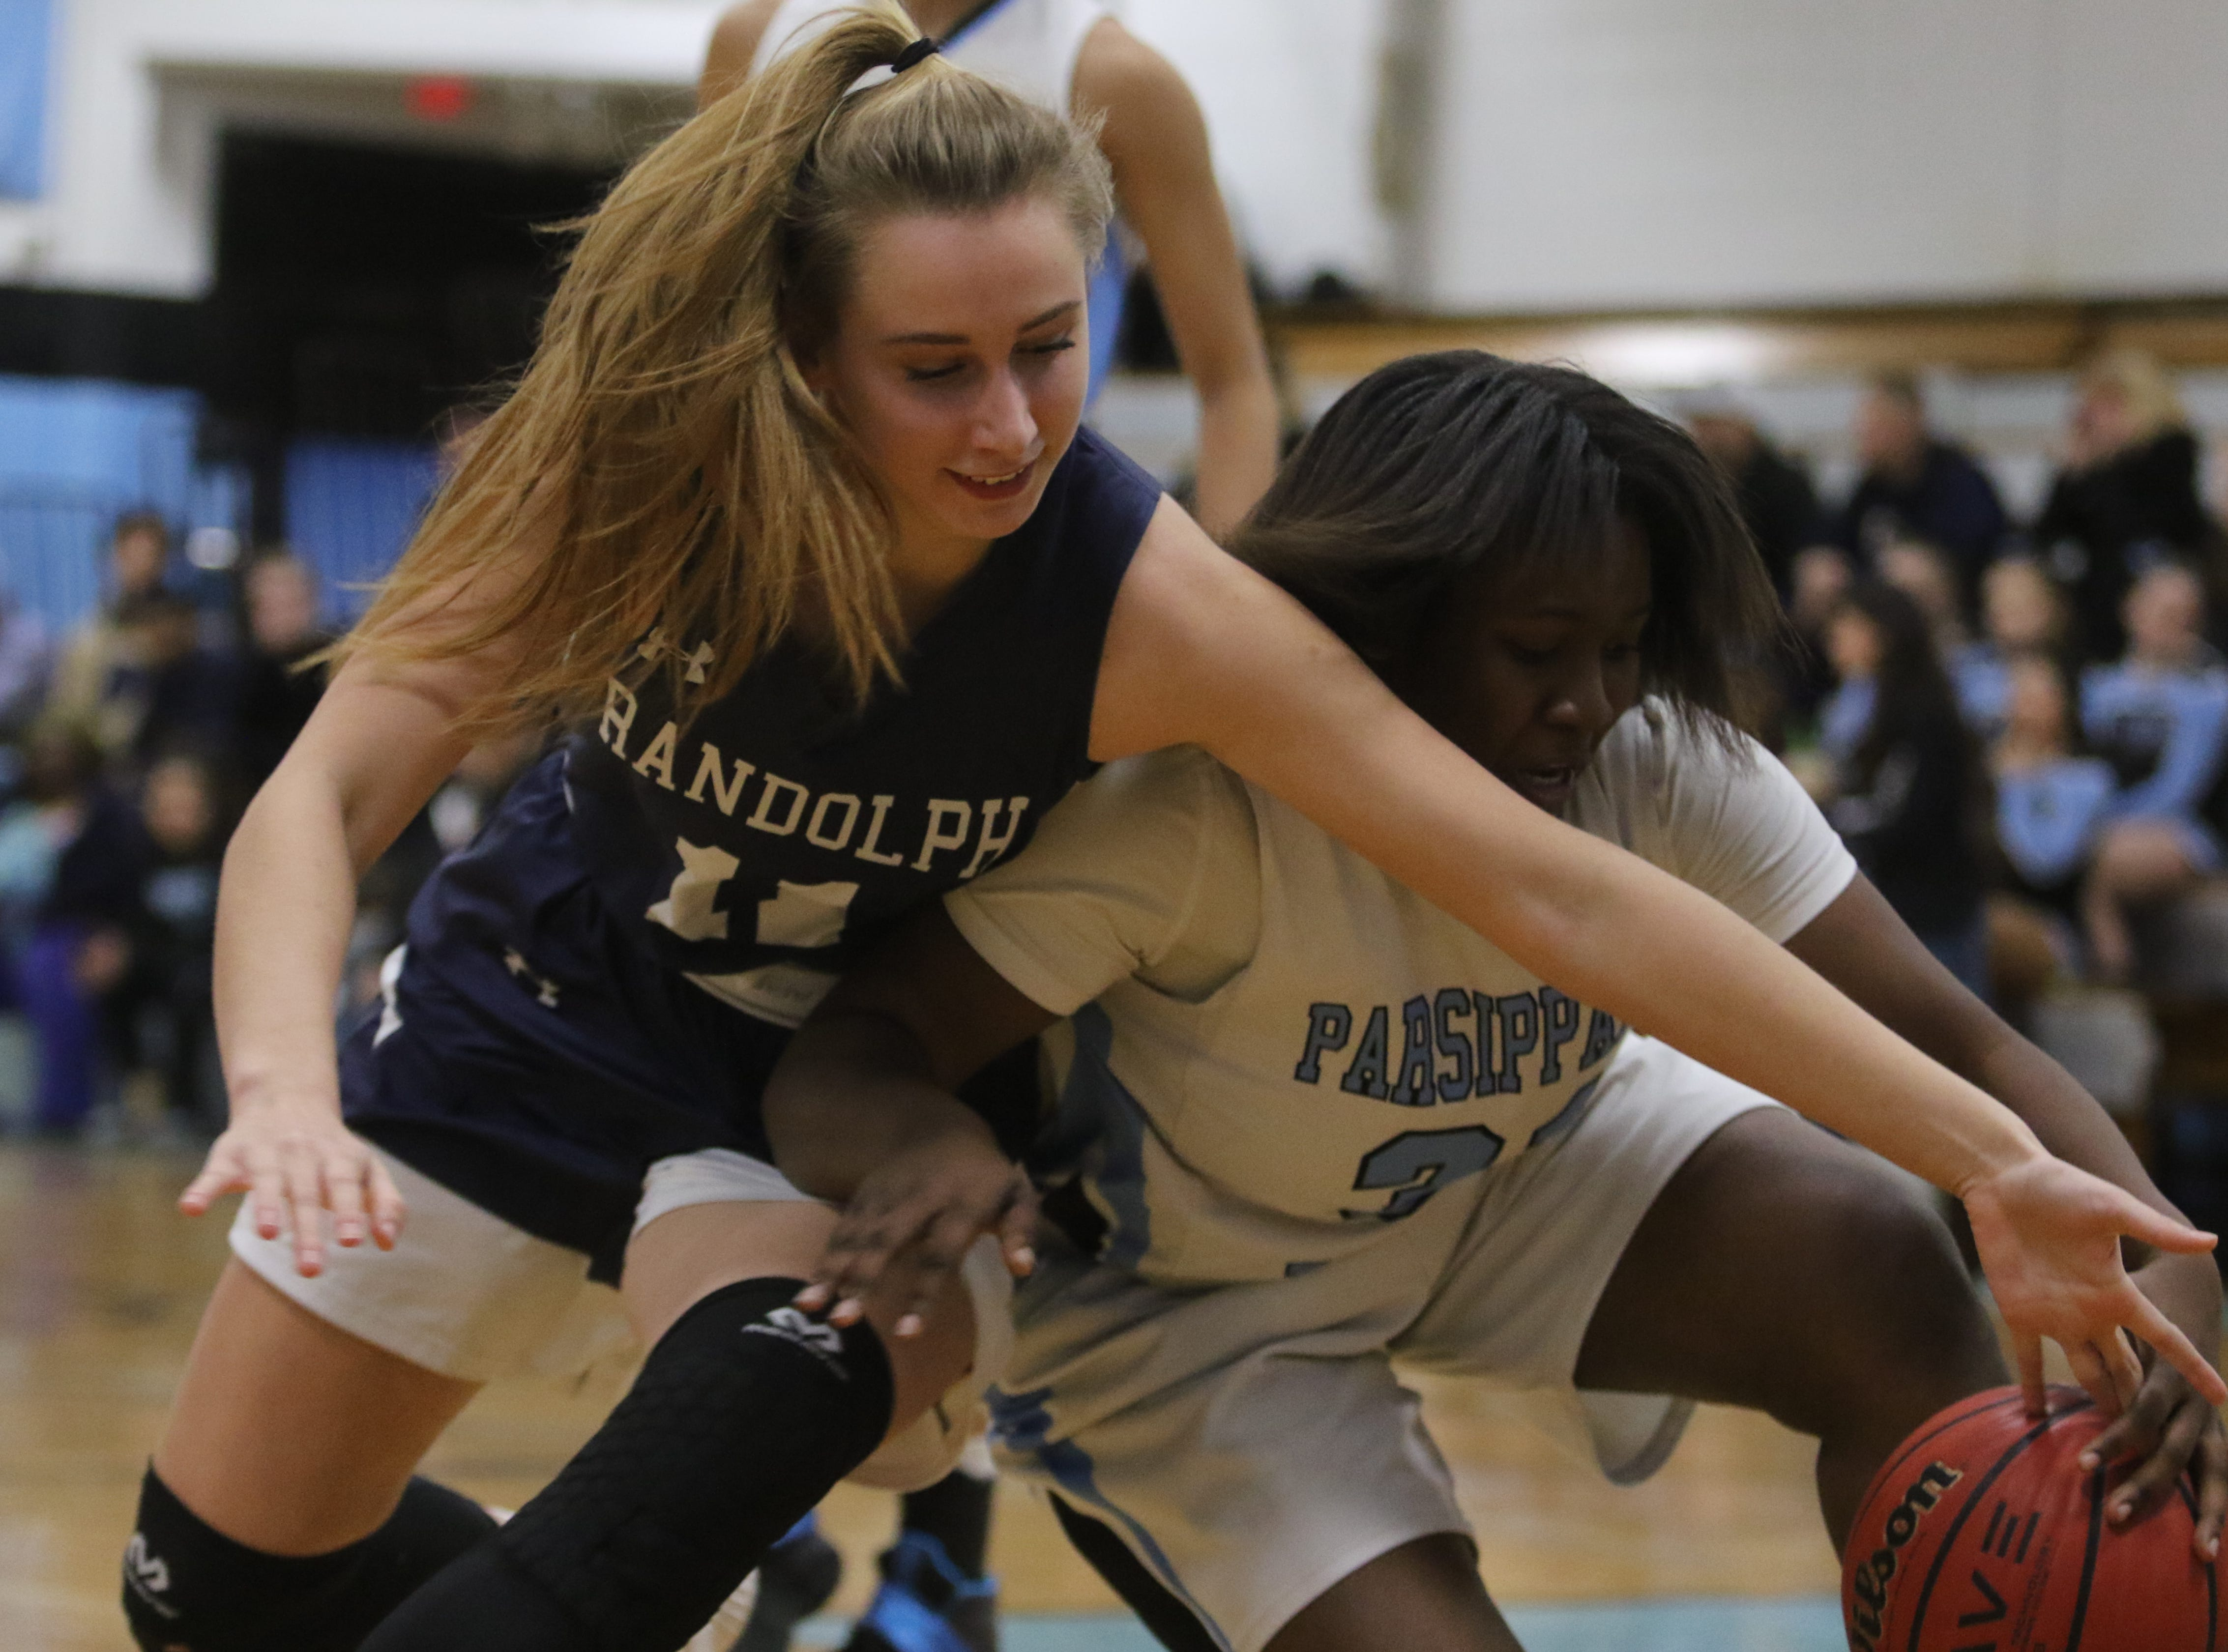 Randolph sophomore Petra Csanyi (left) goes for the ball with Nadriah Freeman of Parsippany Hills in the second half.